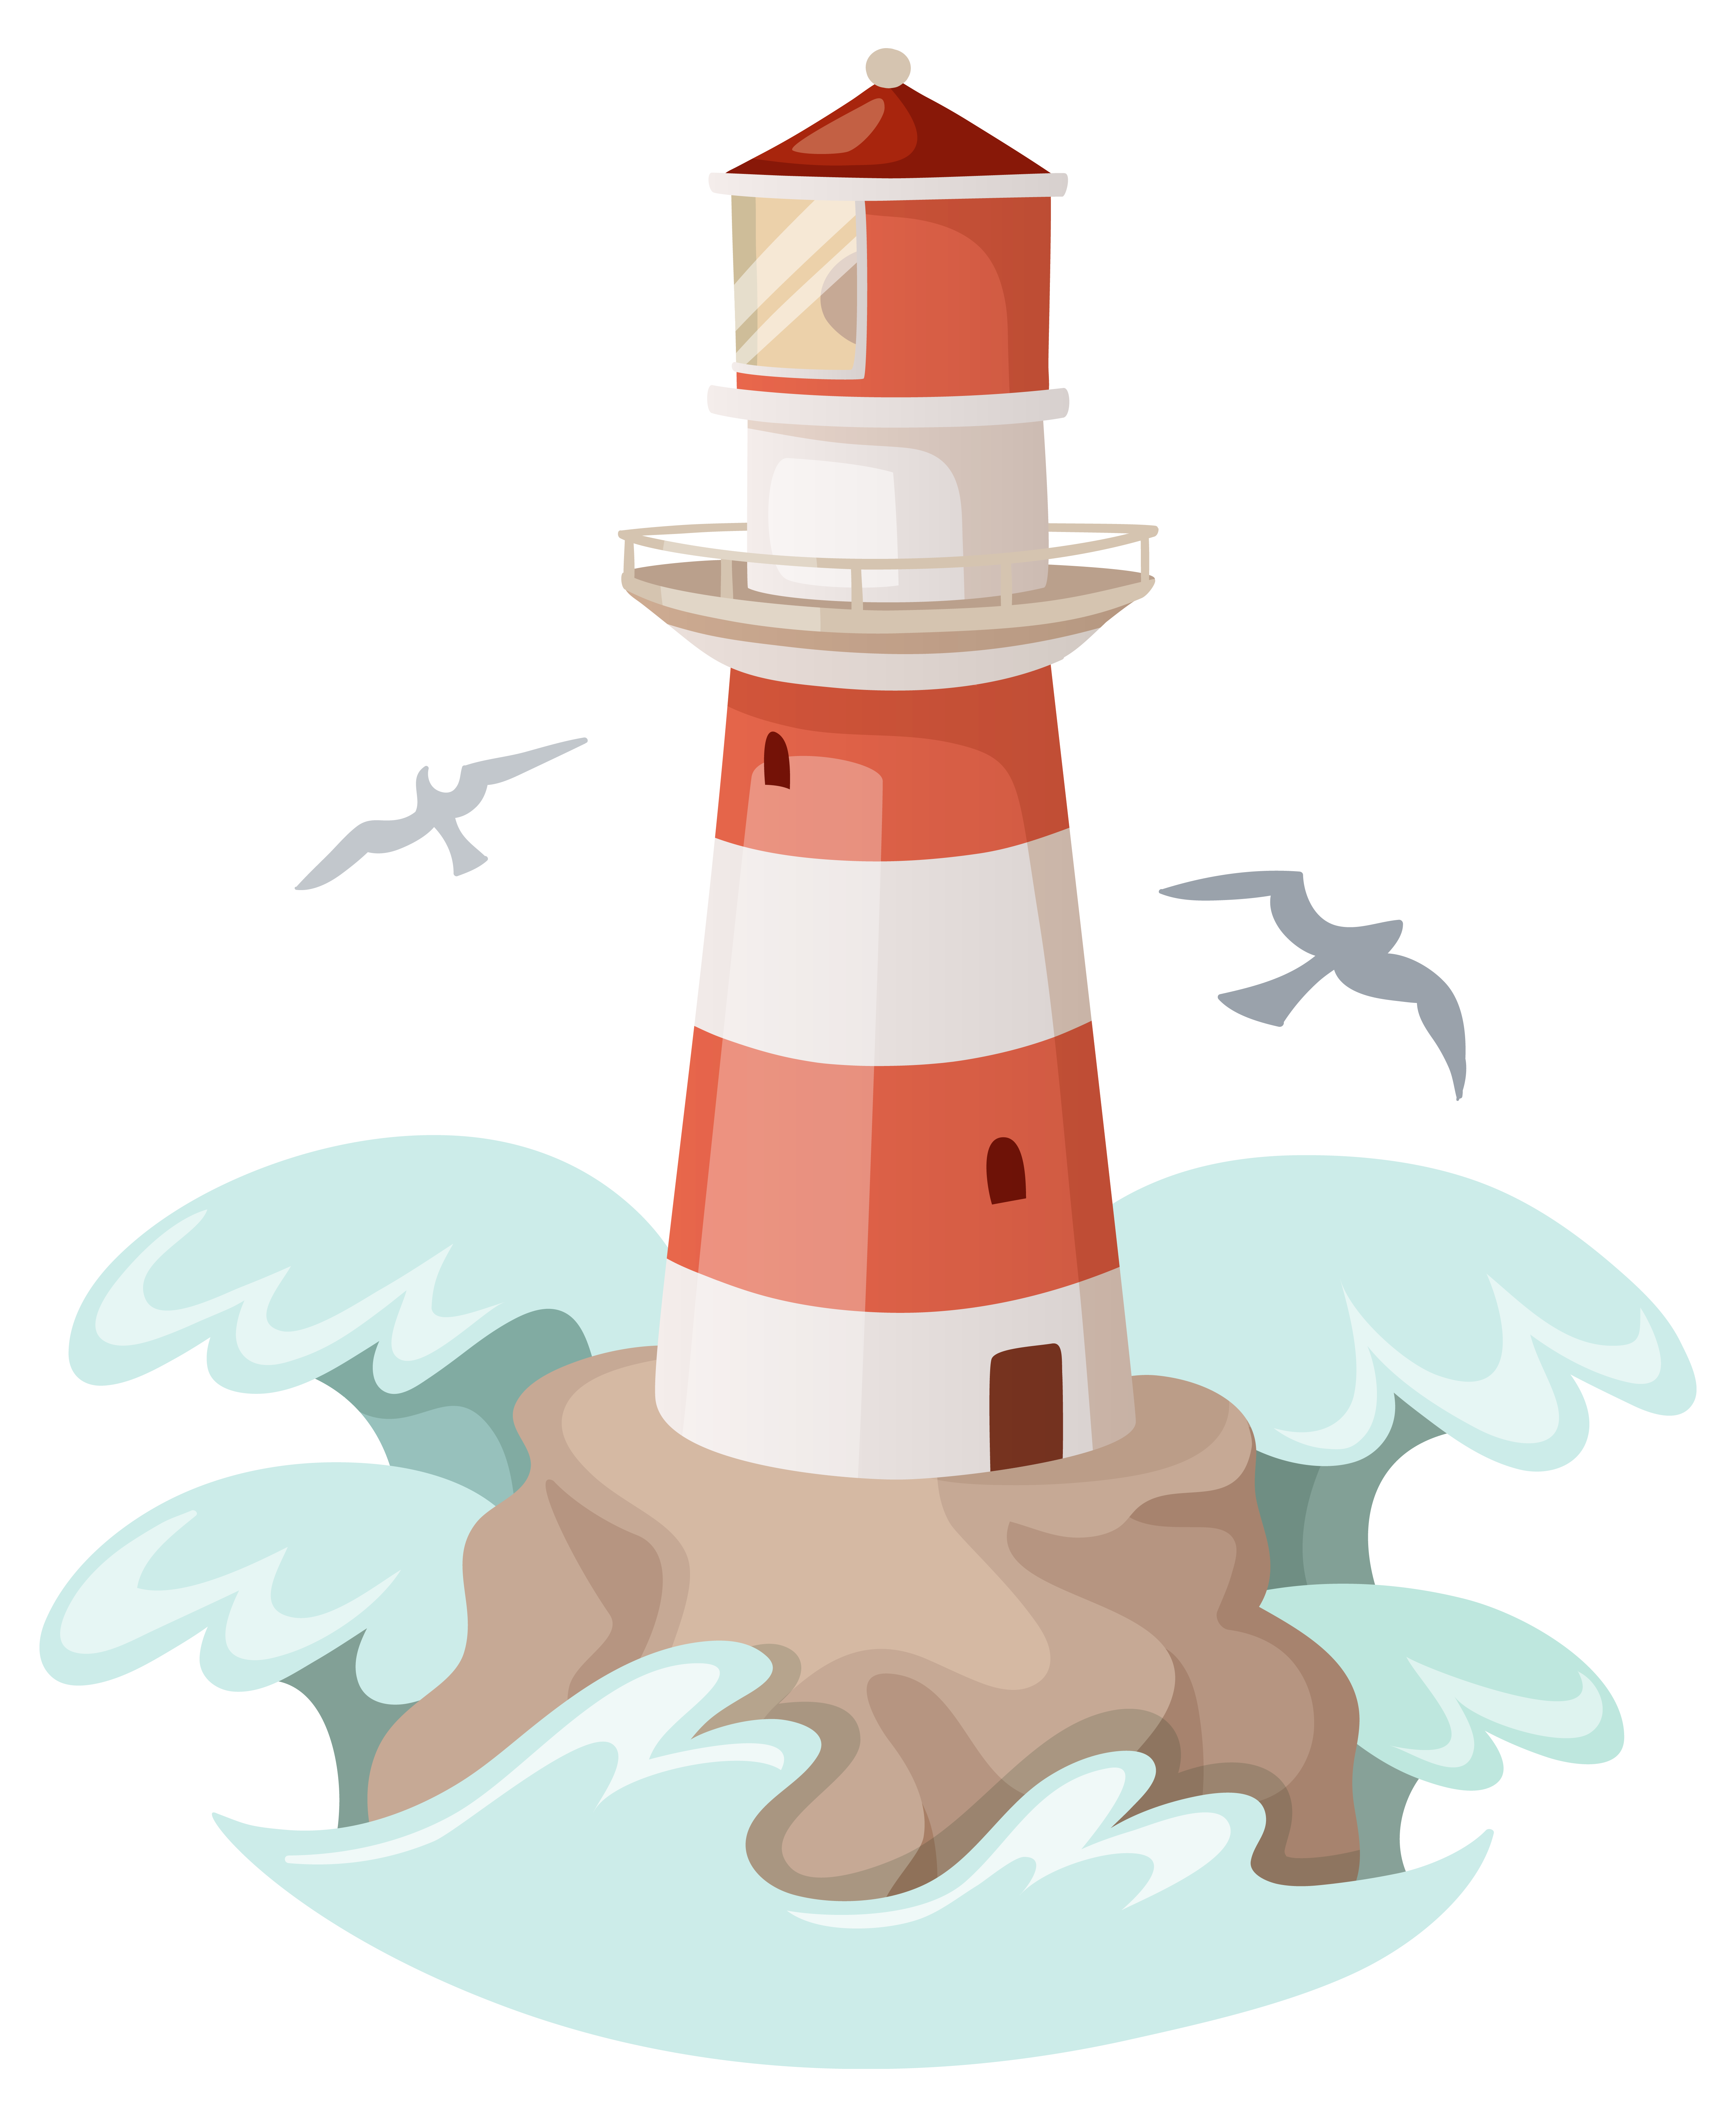 Lighthouse Free Download Png Hq Lighthouse Clipart Flower Background Wallpaper Clip Art